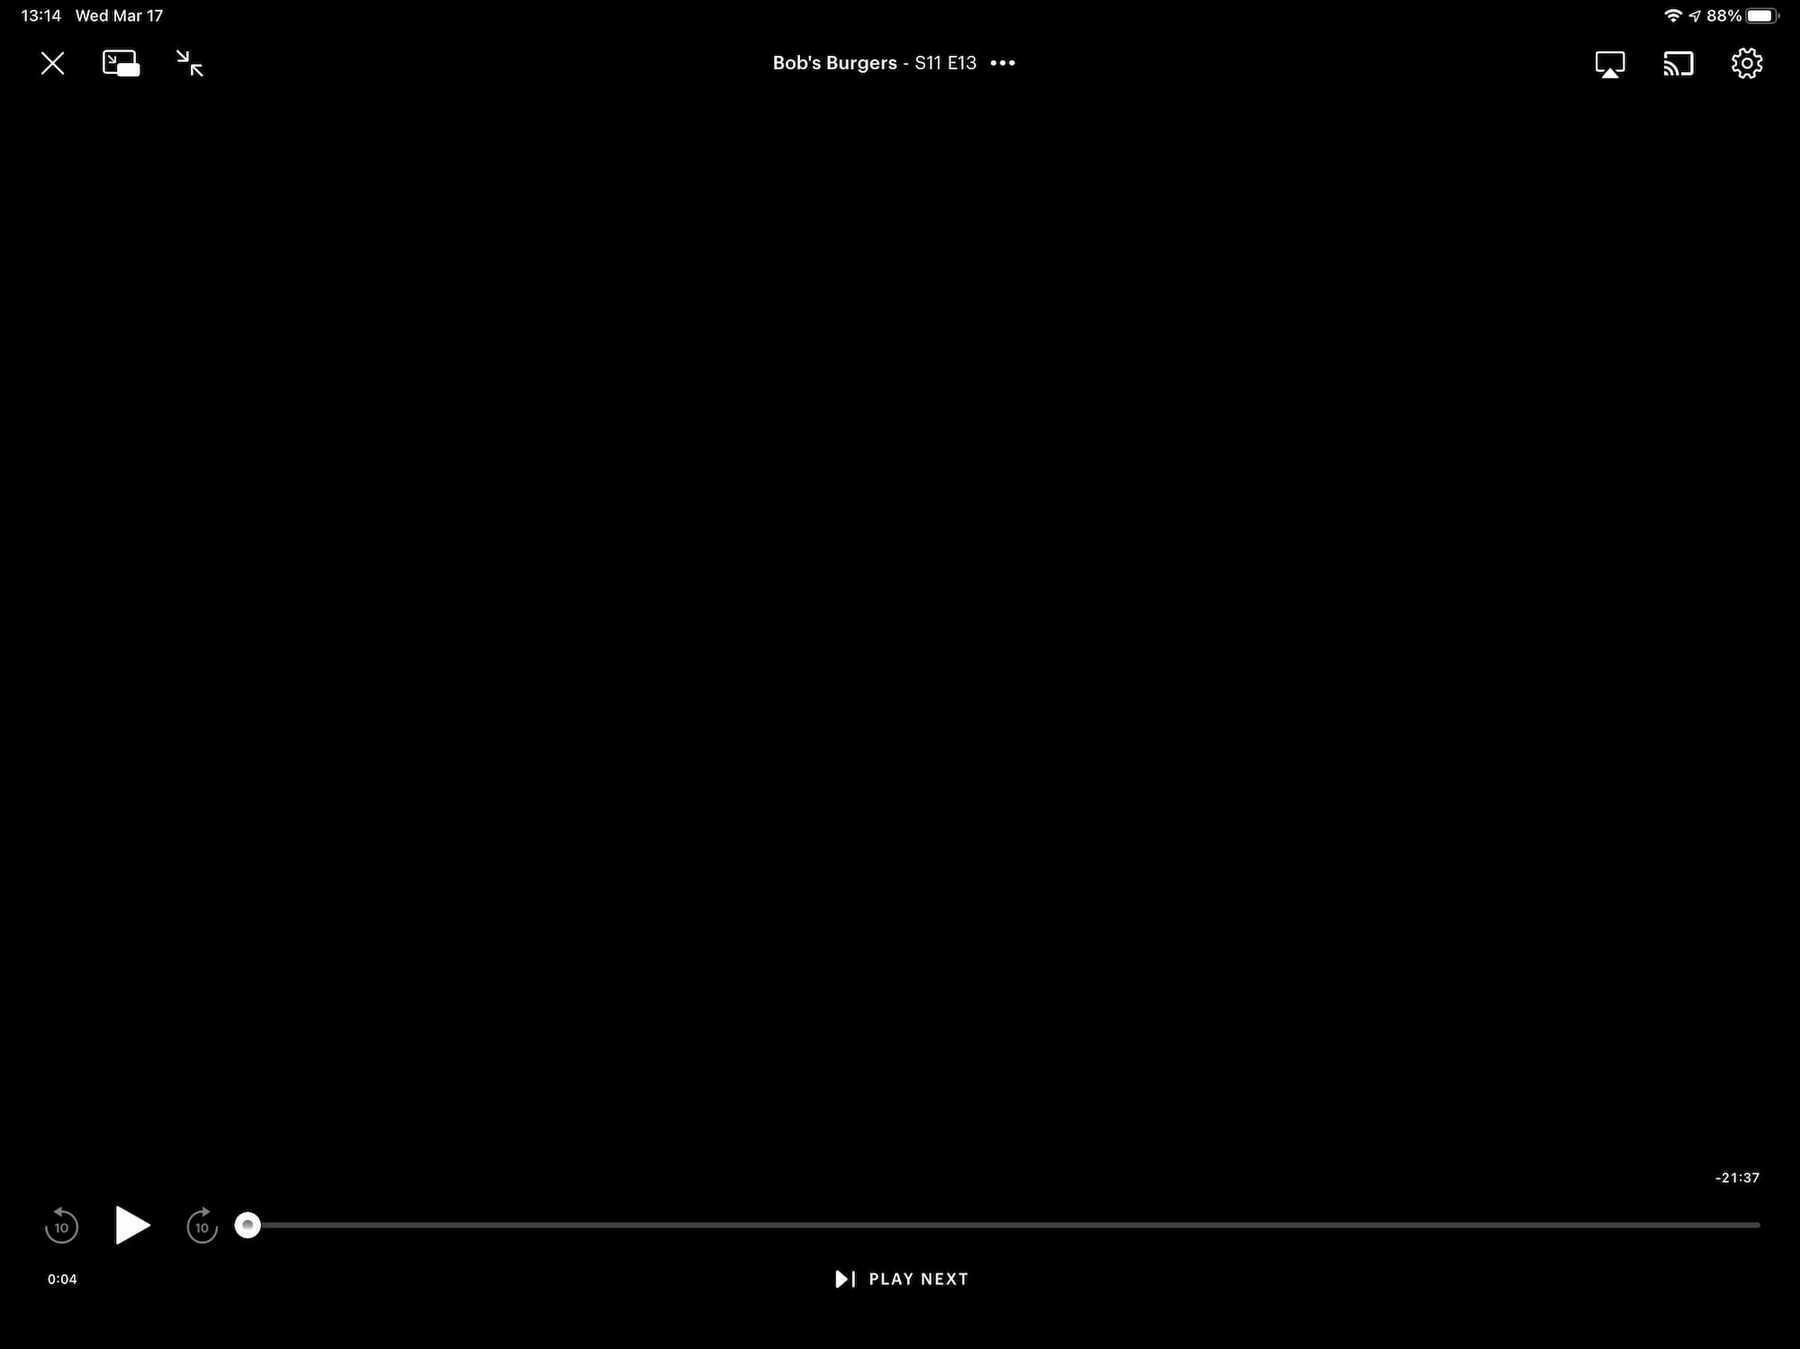 The Hulu player interface.